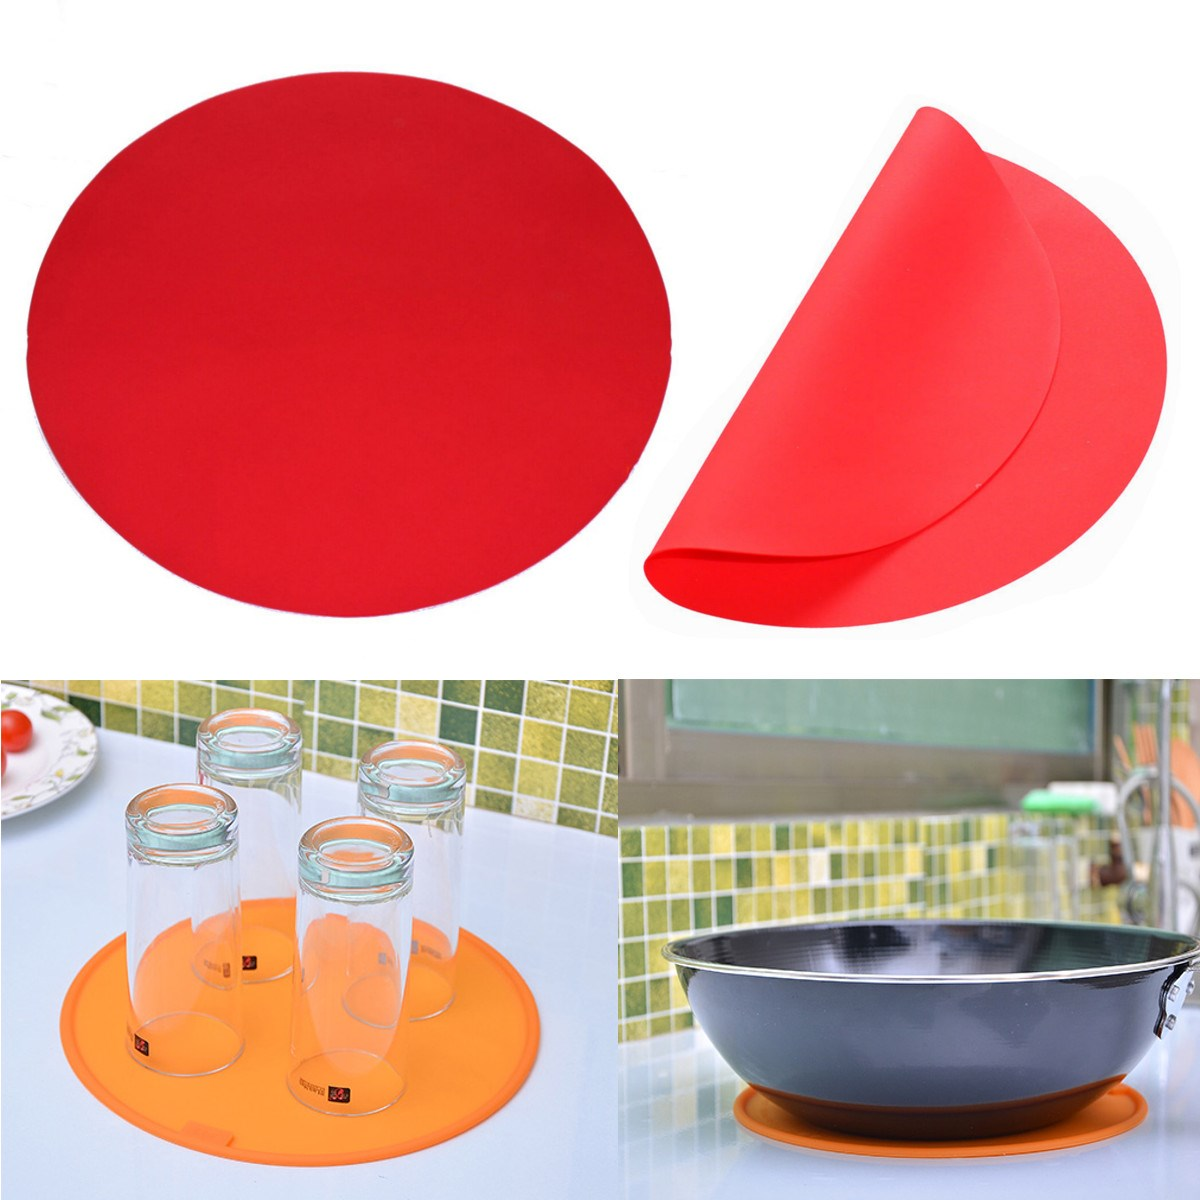 Round Silicone Baking Mat 30cm Oven Cookie Pizza Sheet ...